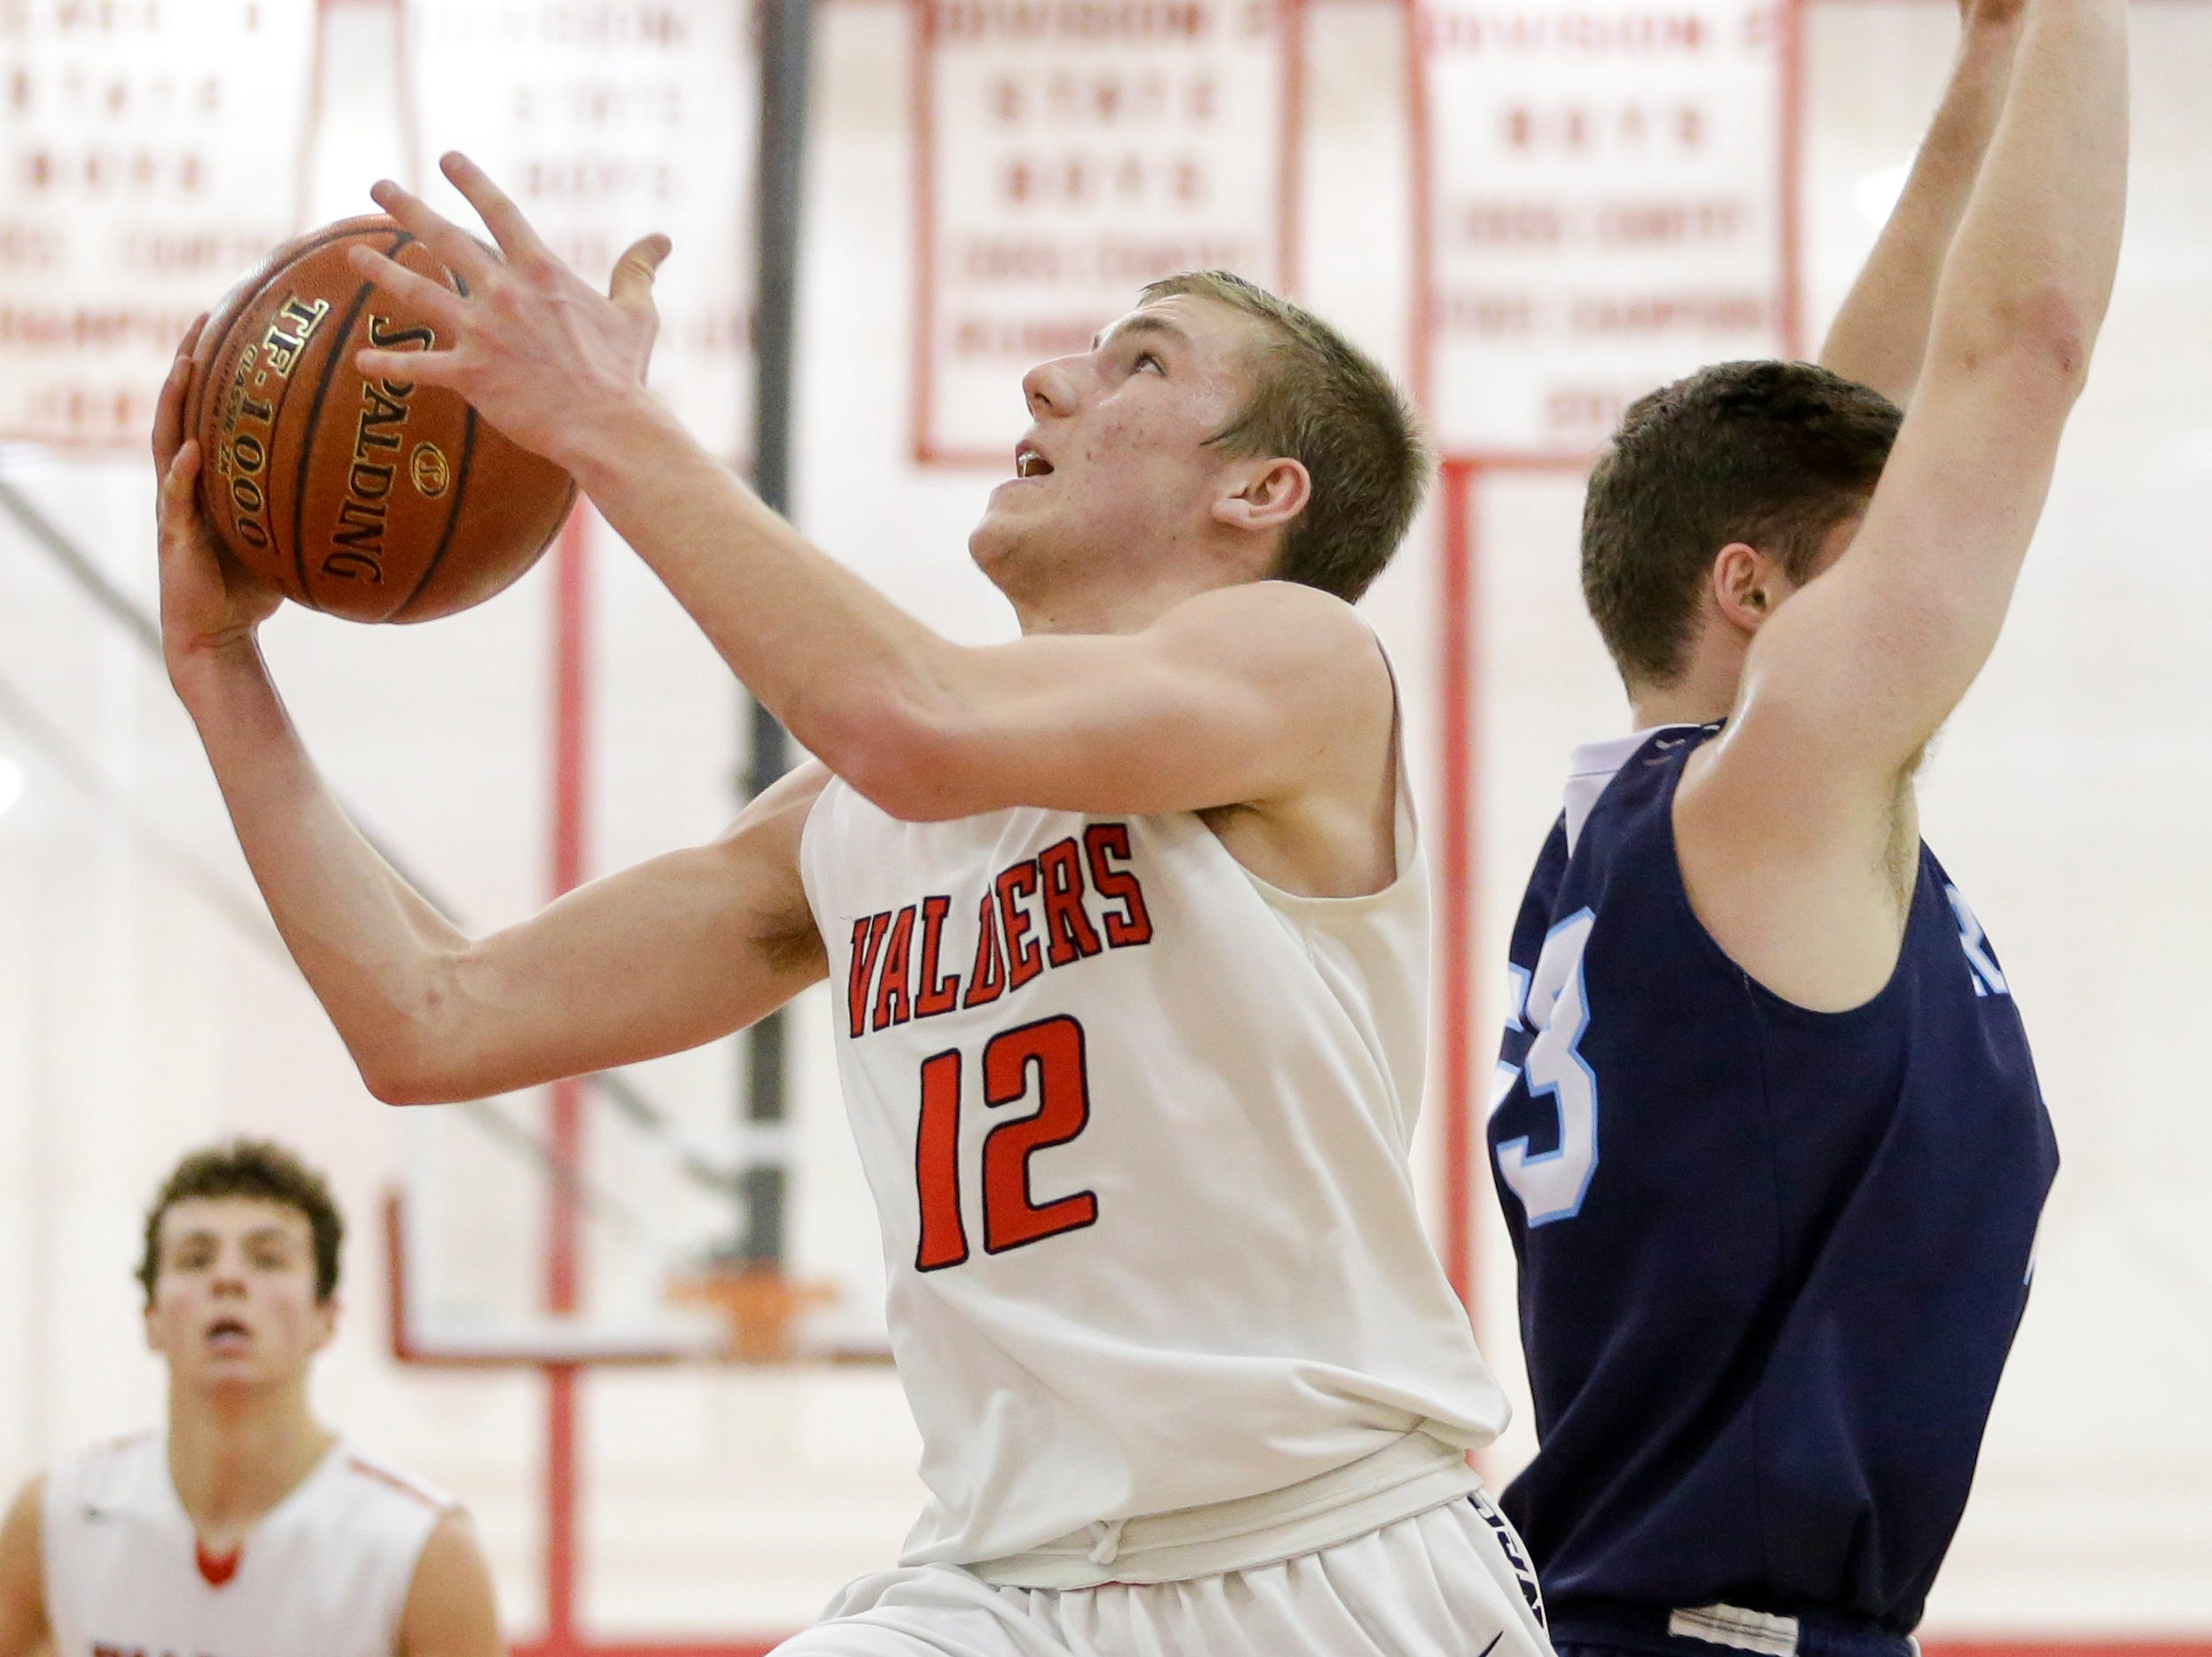 Valders' Trevor Leist shoots against Roncalli during an Eastern Wisconsin Conference game at Valders High School Thursday, January 3, 2019, in Valders, Wis. Joshua Clark/USA TODAY NETWORK-Wisconsin